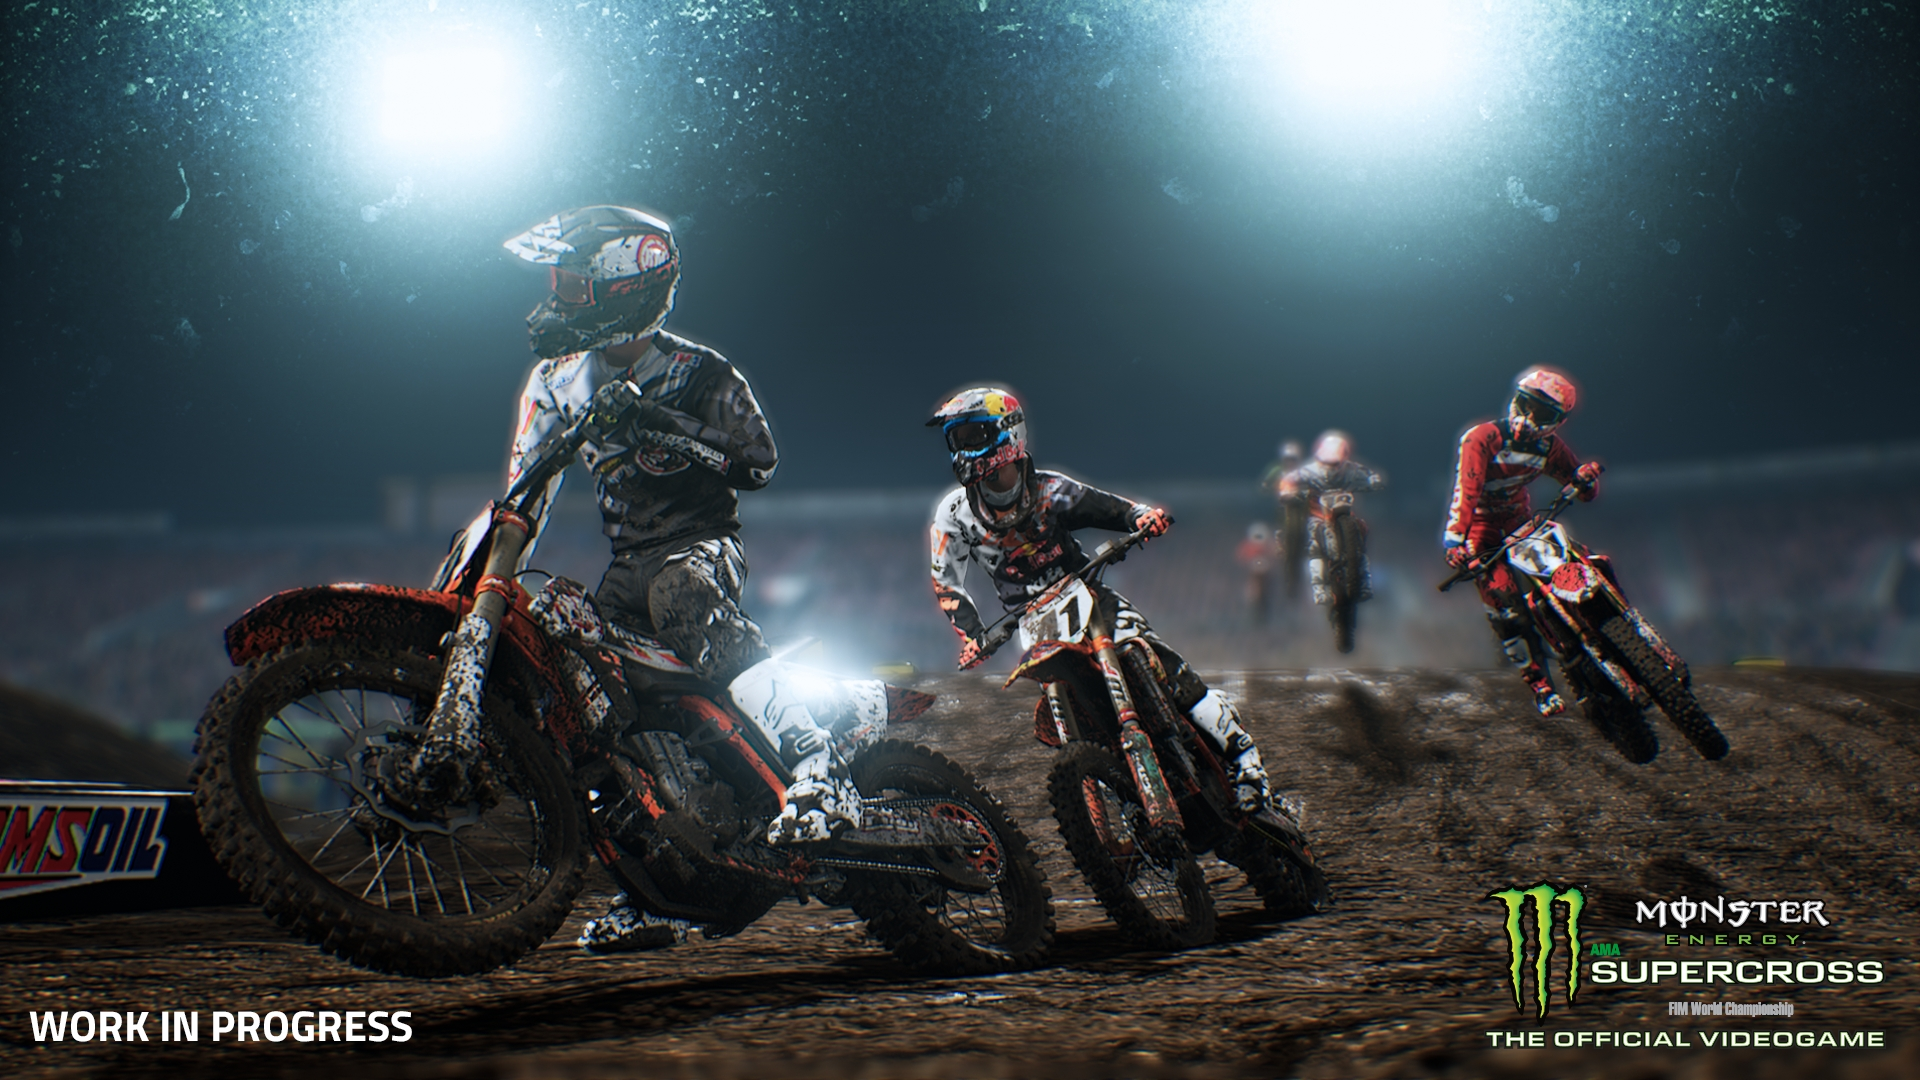 High Quality As Well As Looking That Much Better, Thereu0027s A Lot To Say About How Monster  Energy Supercross Feels. Being A Motorbike Rider Myself (albeit Not An  Offroad ... Pictures Gallery